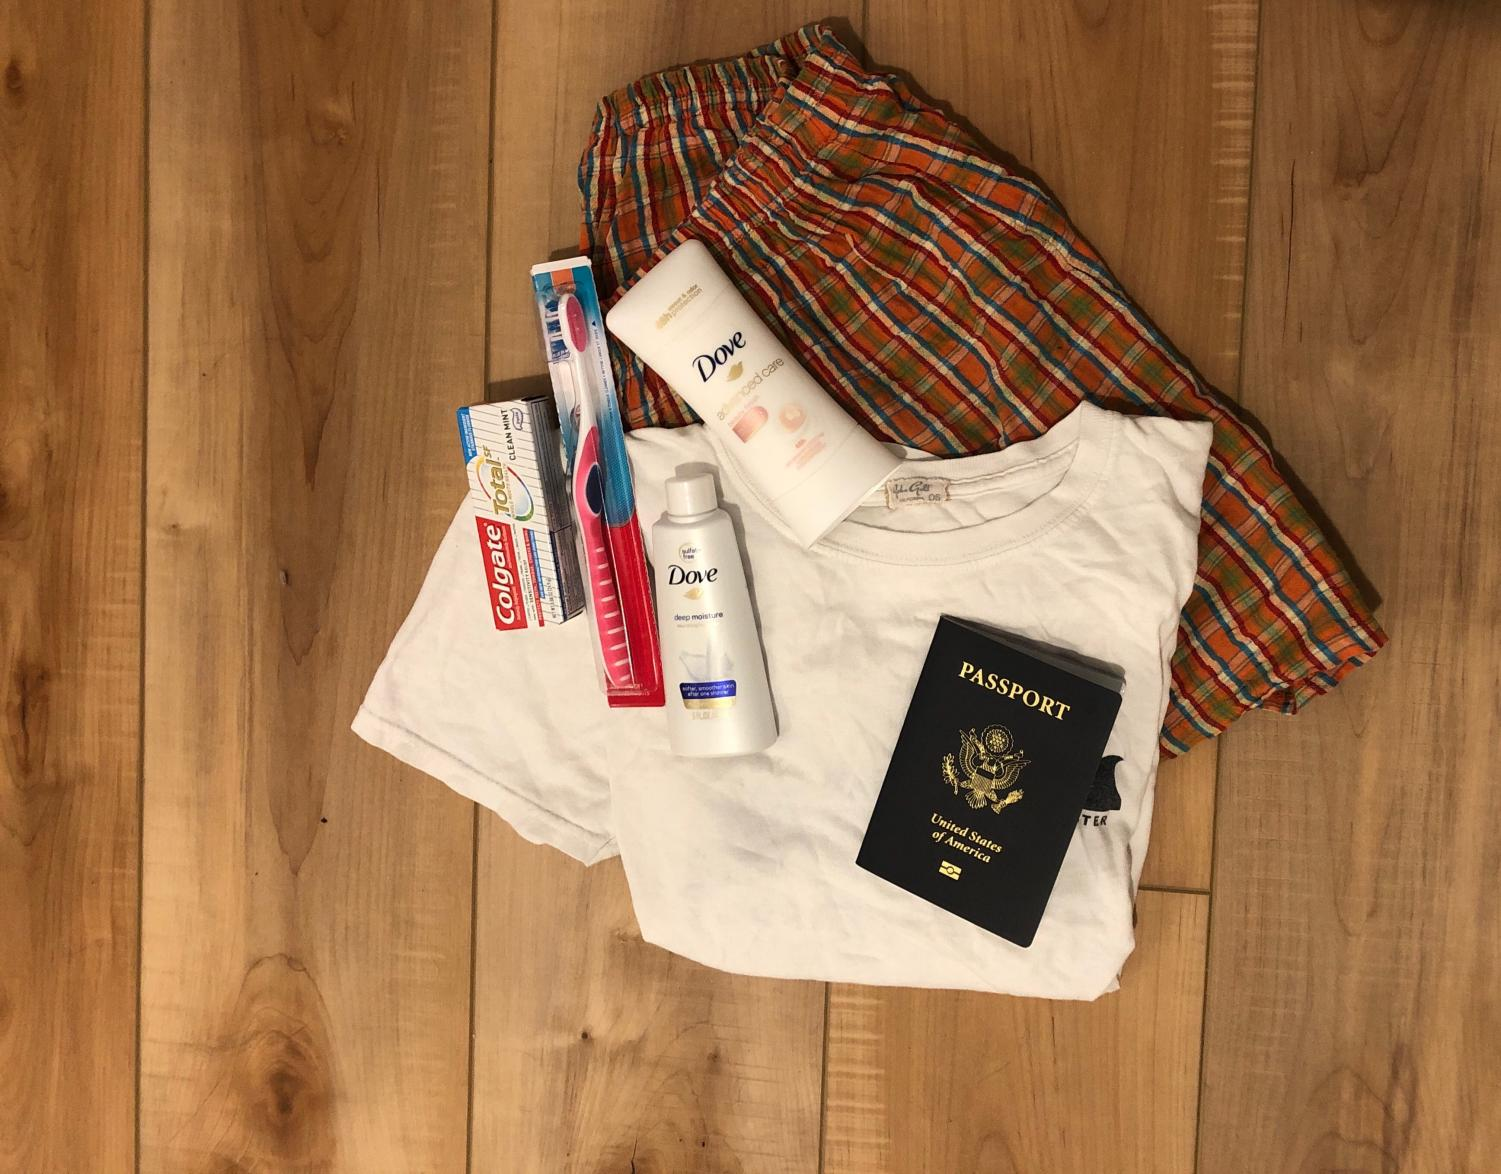 Here are some of the necessities to pack up in the event of an evacuation. By keeping a bag ready, you can leave your house quickly in case of evacuation.